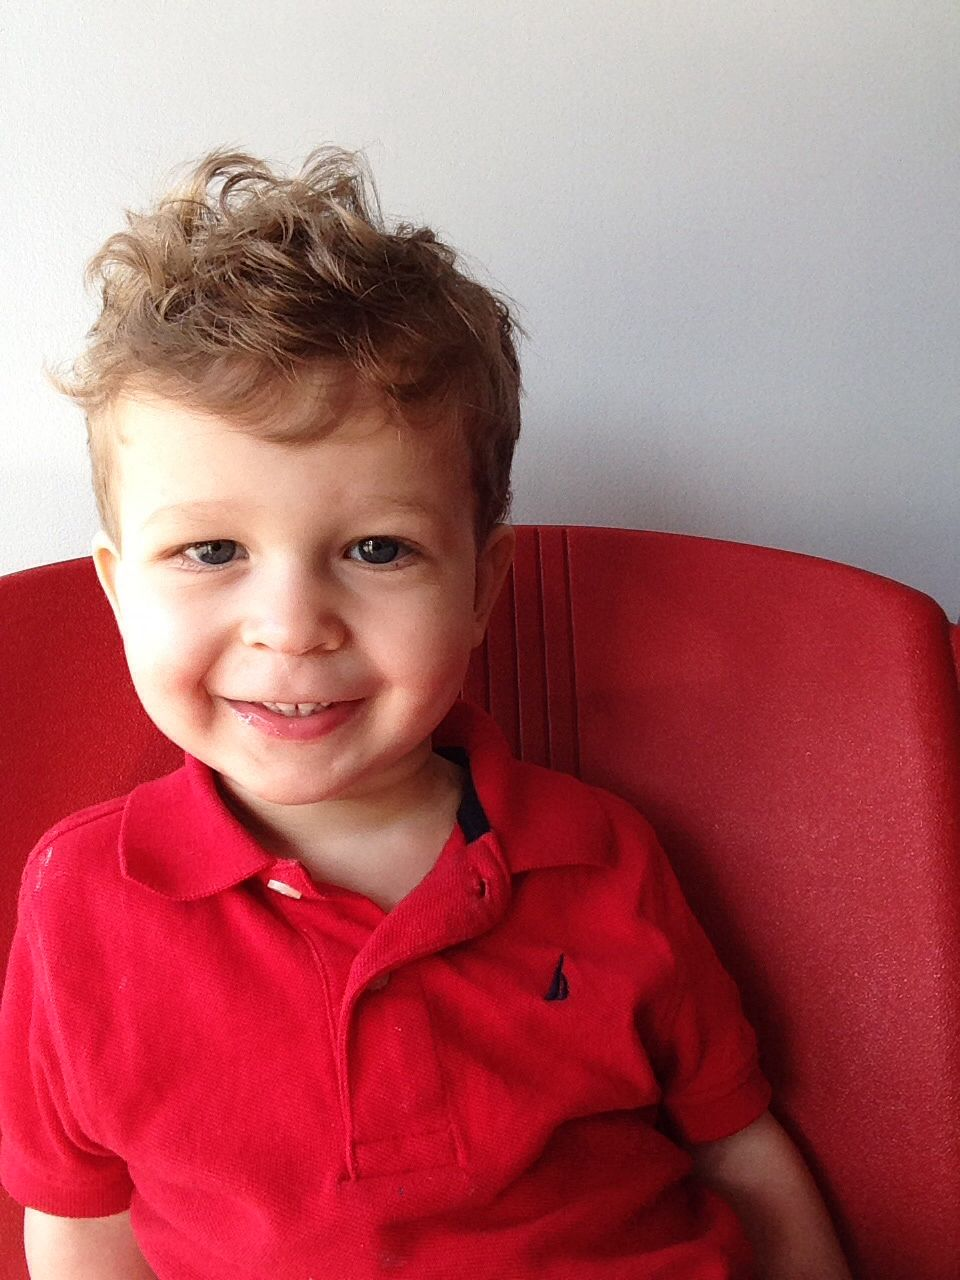 Cute haircut u hairstyle for toddler boy my month old short on